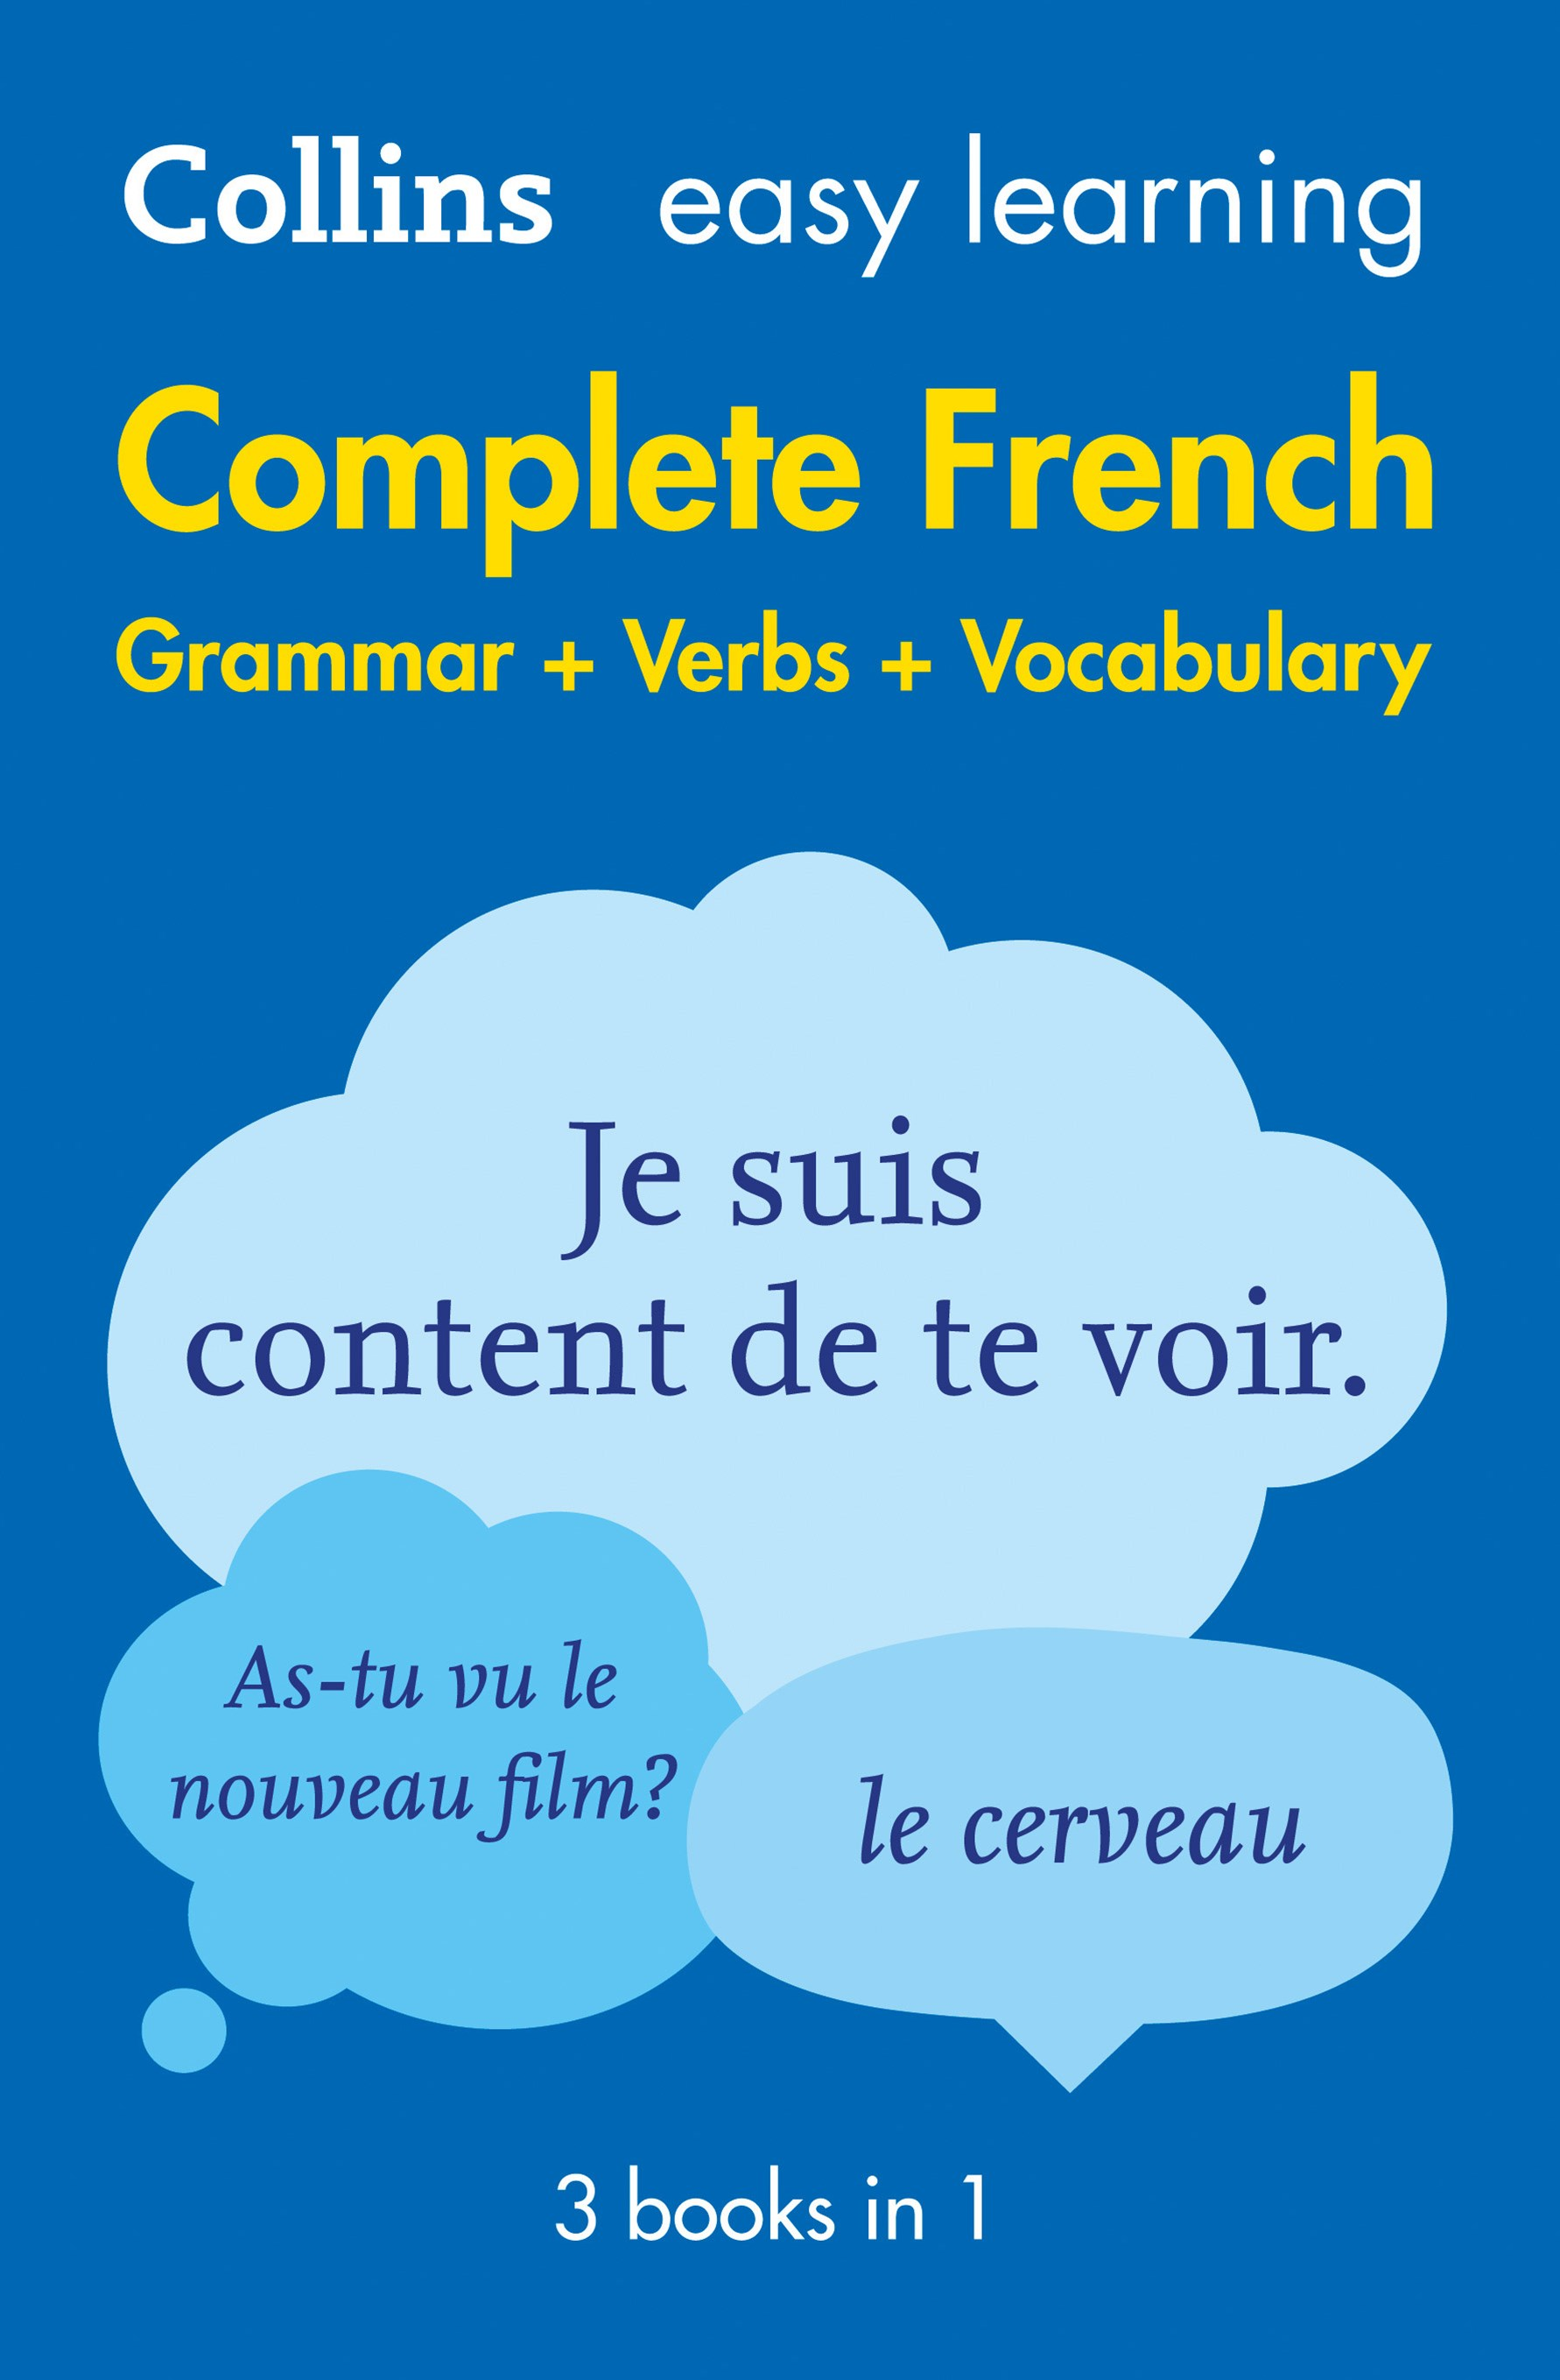 Collins Easy Learning Complete French Grammar, Verbs and Vocabulary (3 Books In 1) [2nd Edition]